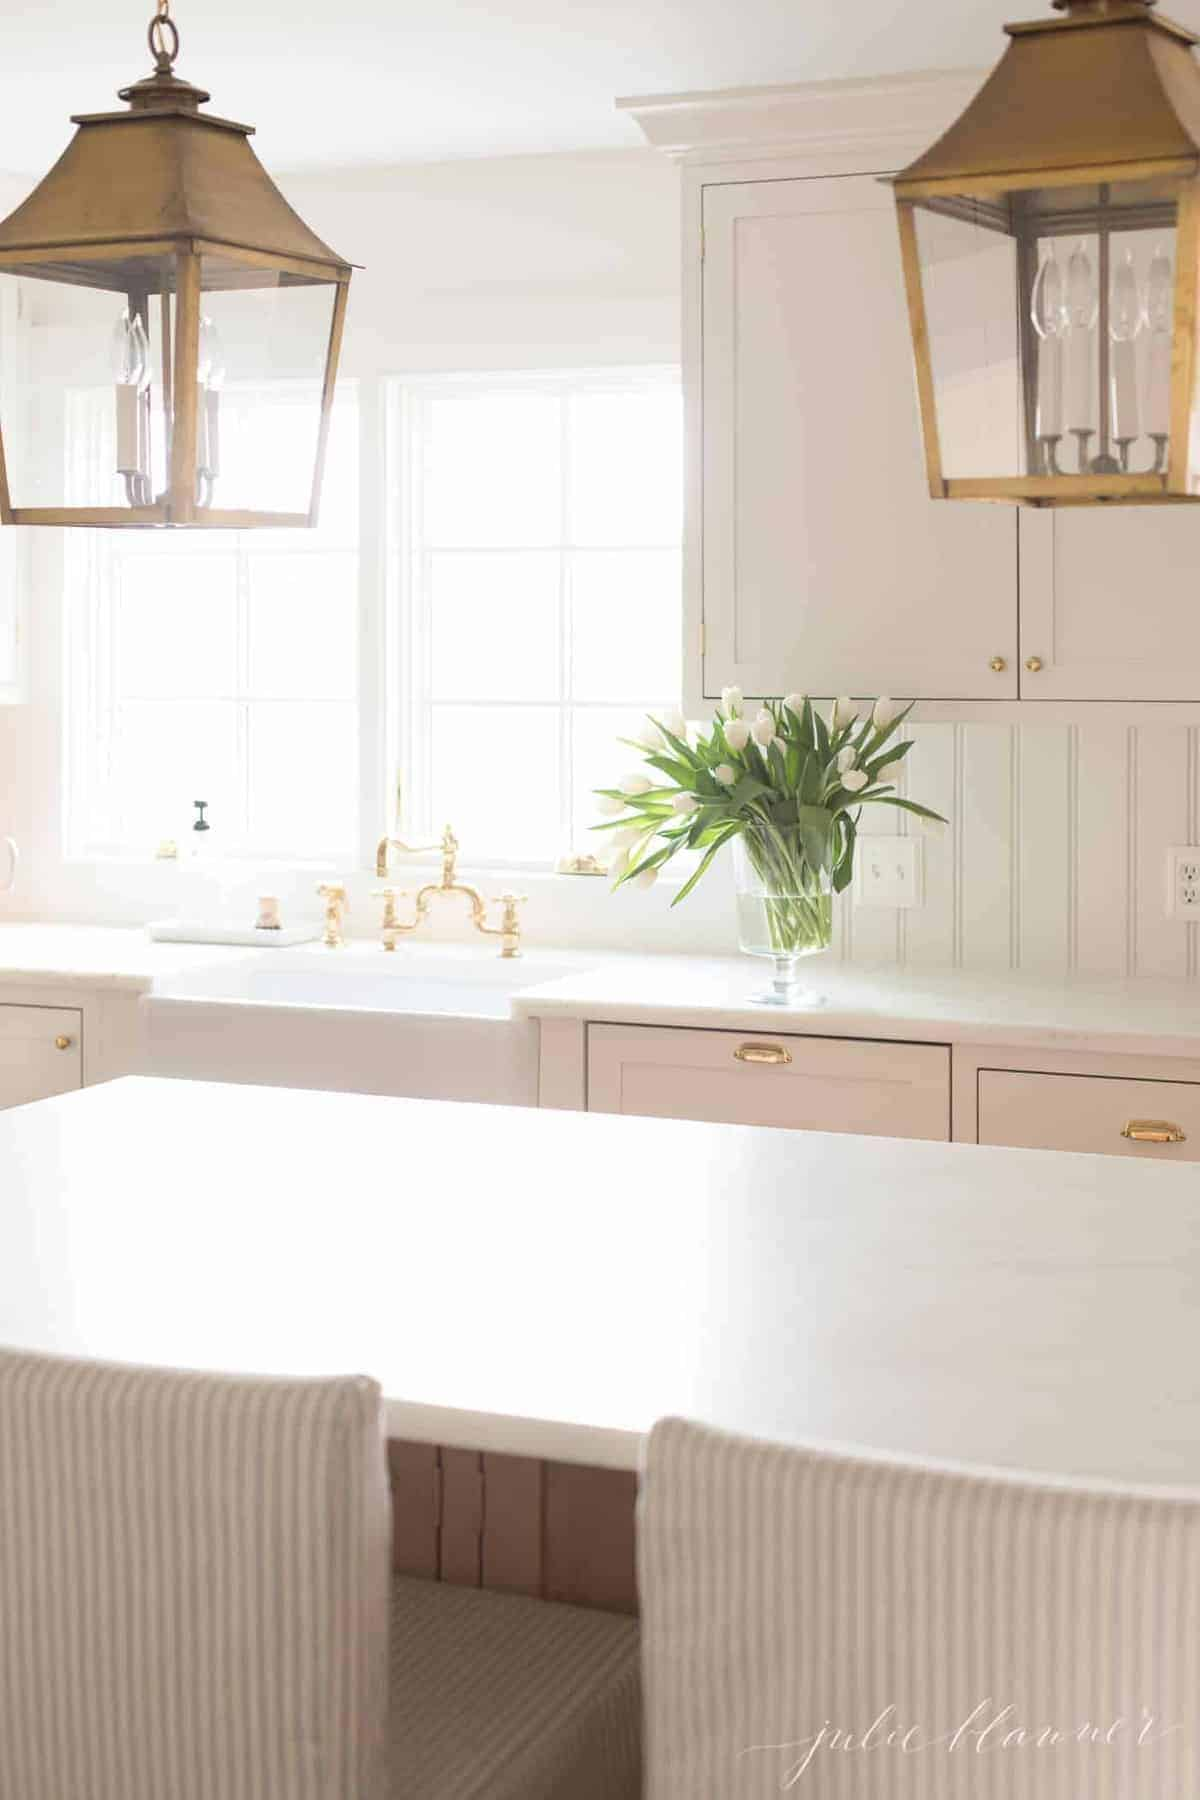 A white kitchen with white marble countertops, flowers by the sink